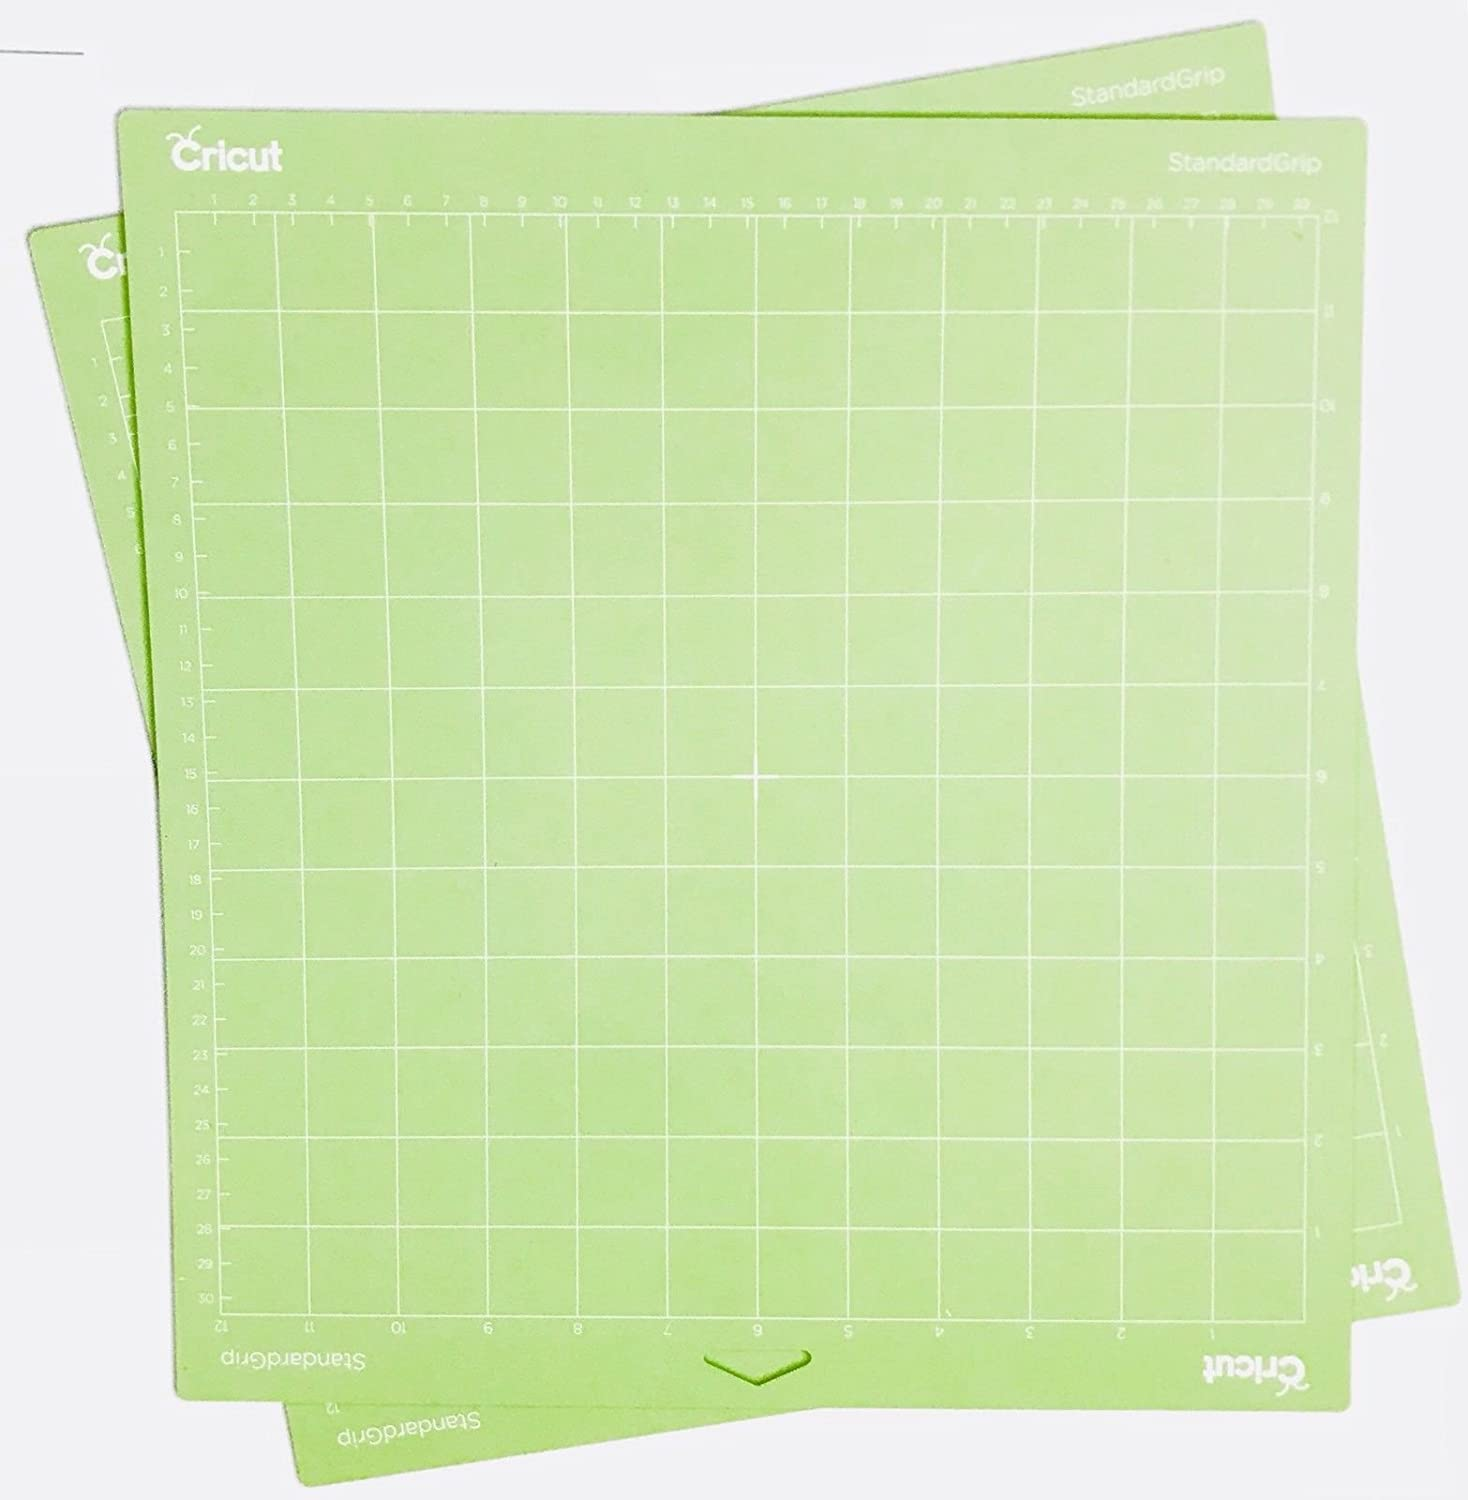 Cricut Adhesive Cutting Mat Standard Grip 12 x 12 2 pieces Per Package